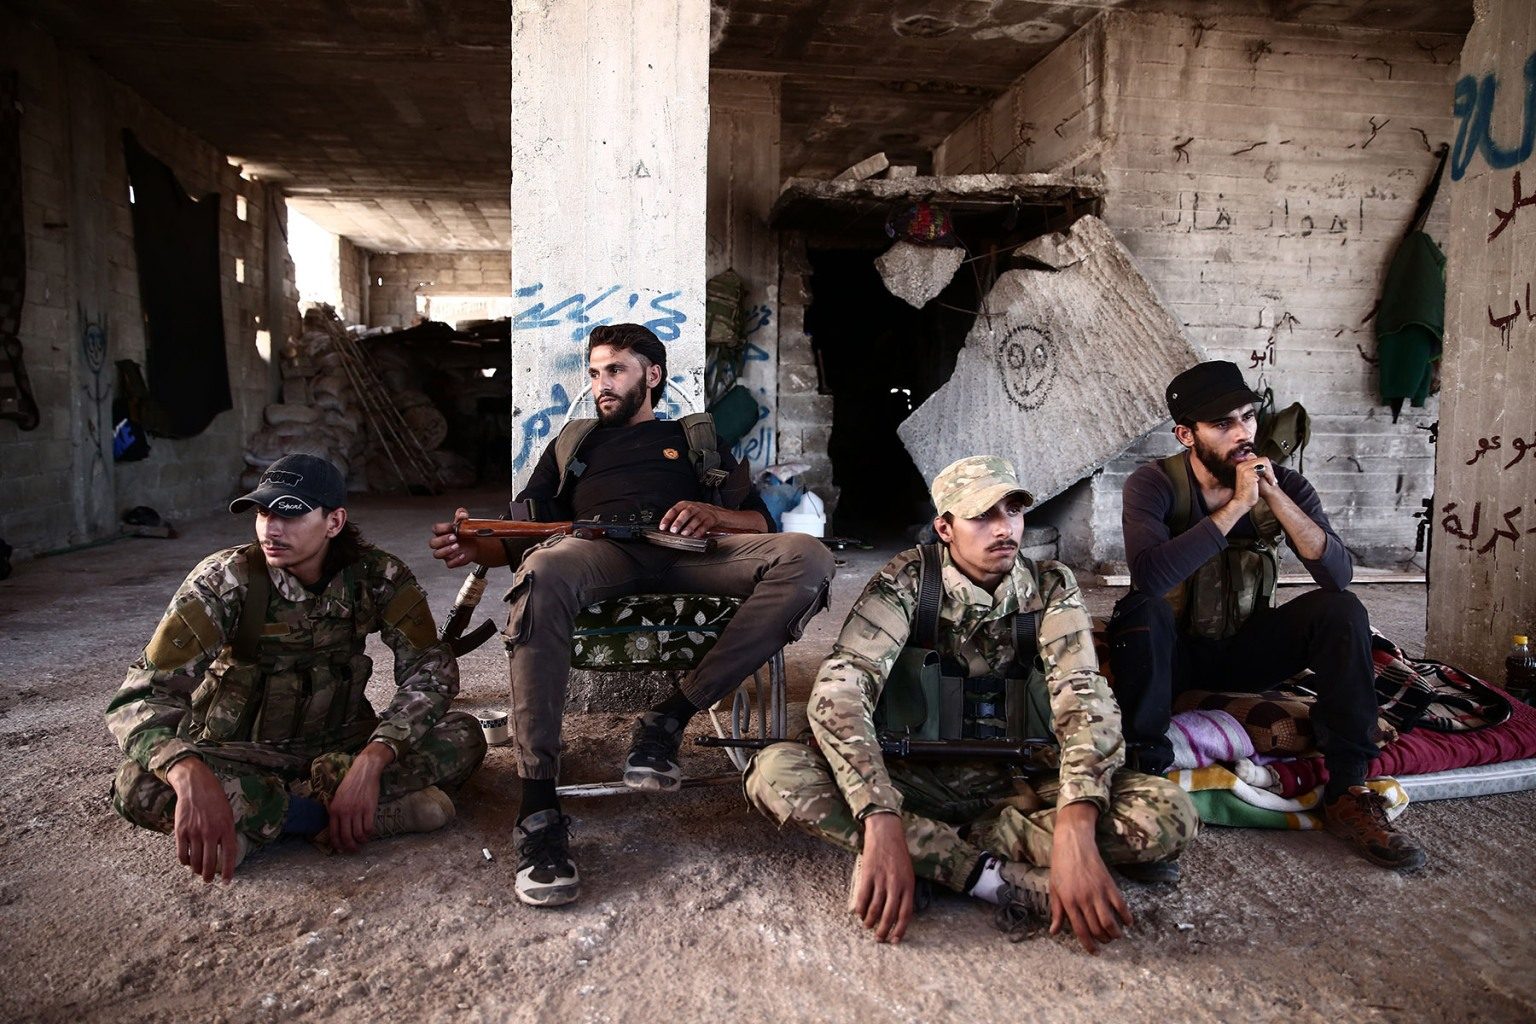 Fighters from the Nureddine al-Zinki unit, a moderate Syrian opposition faction affiliated with the Muslim Brotherhood, rest in a rebel-held part of Aleppo province on Sept. 23. NAZEER AL-KHATIB/AFP/Getty Images